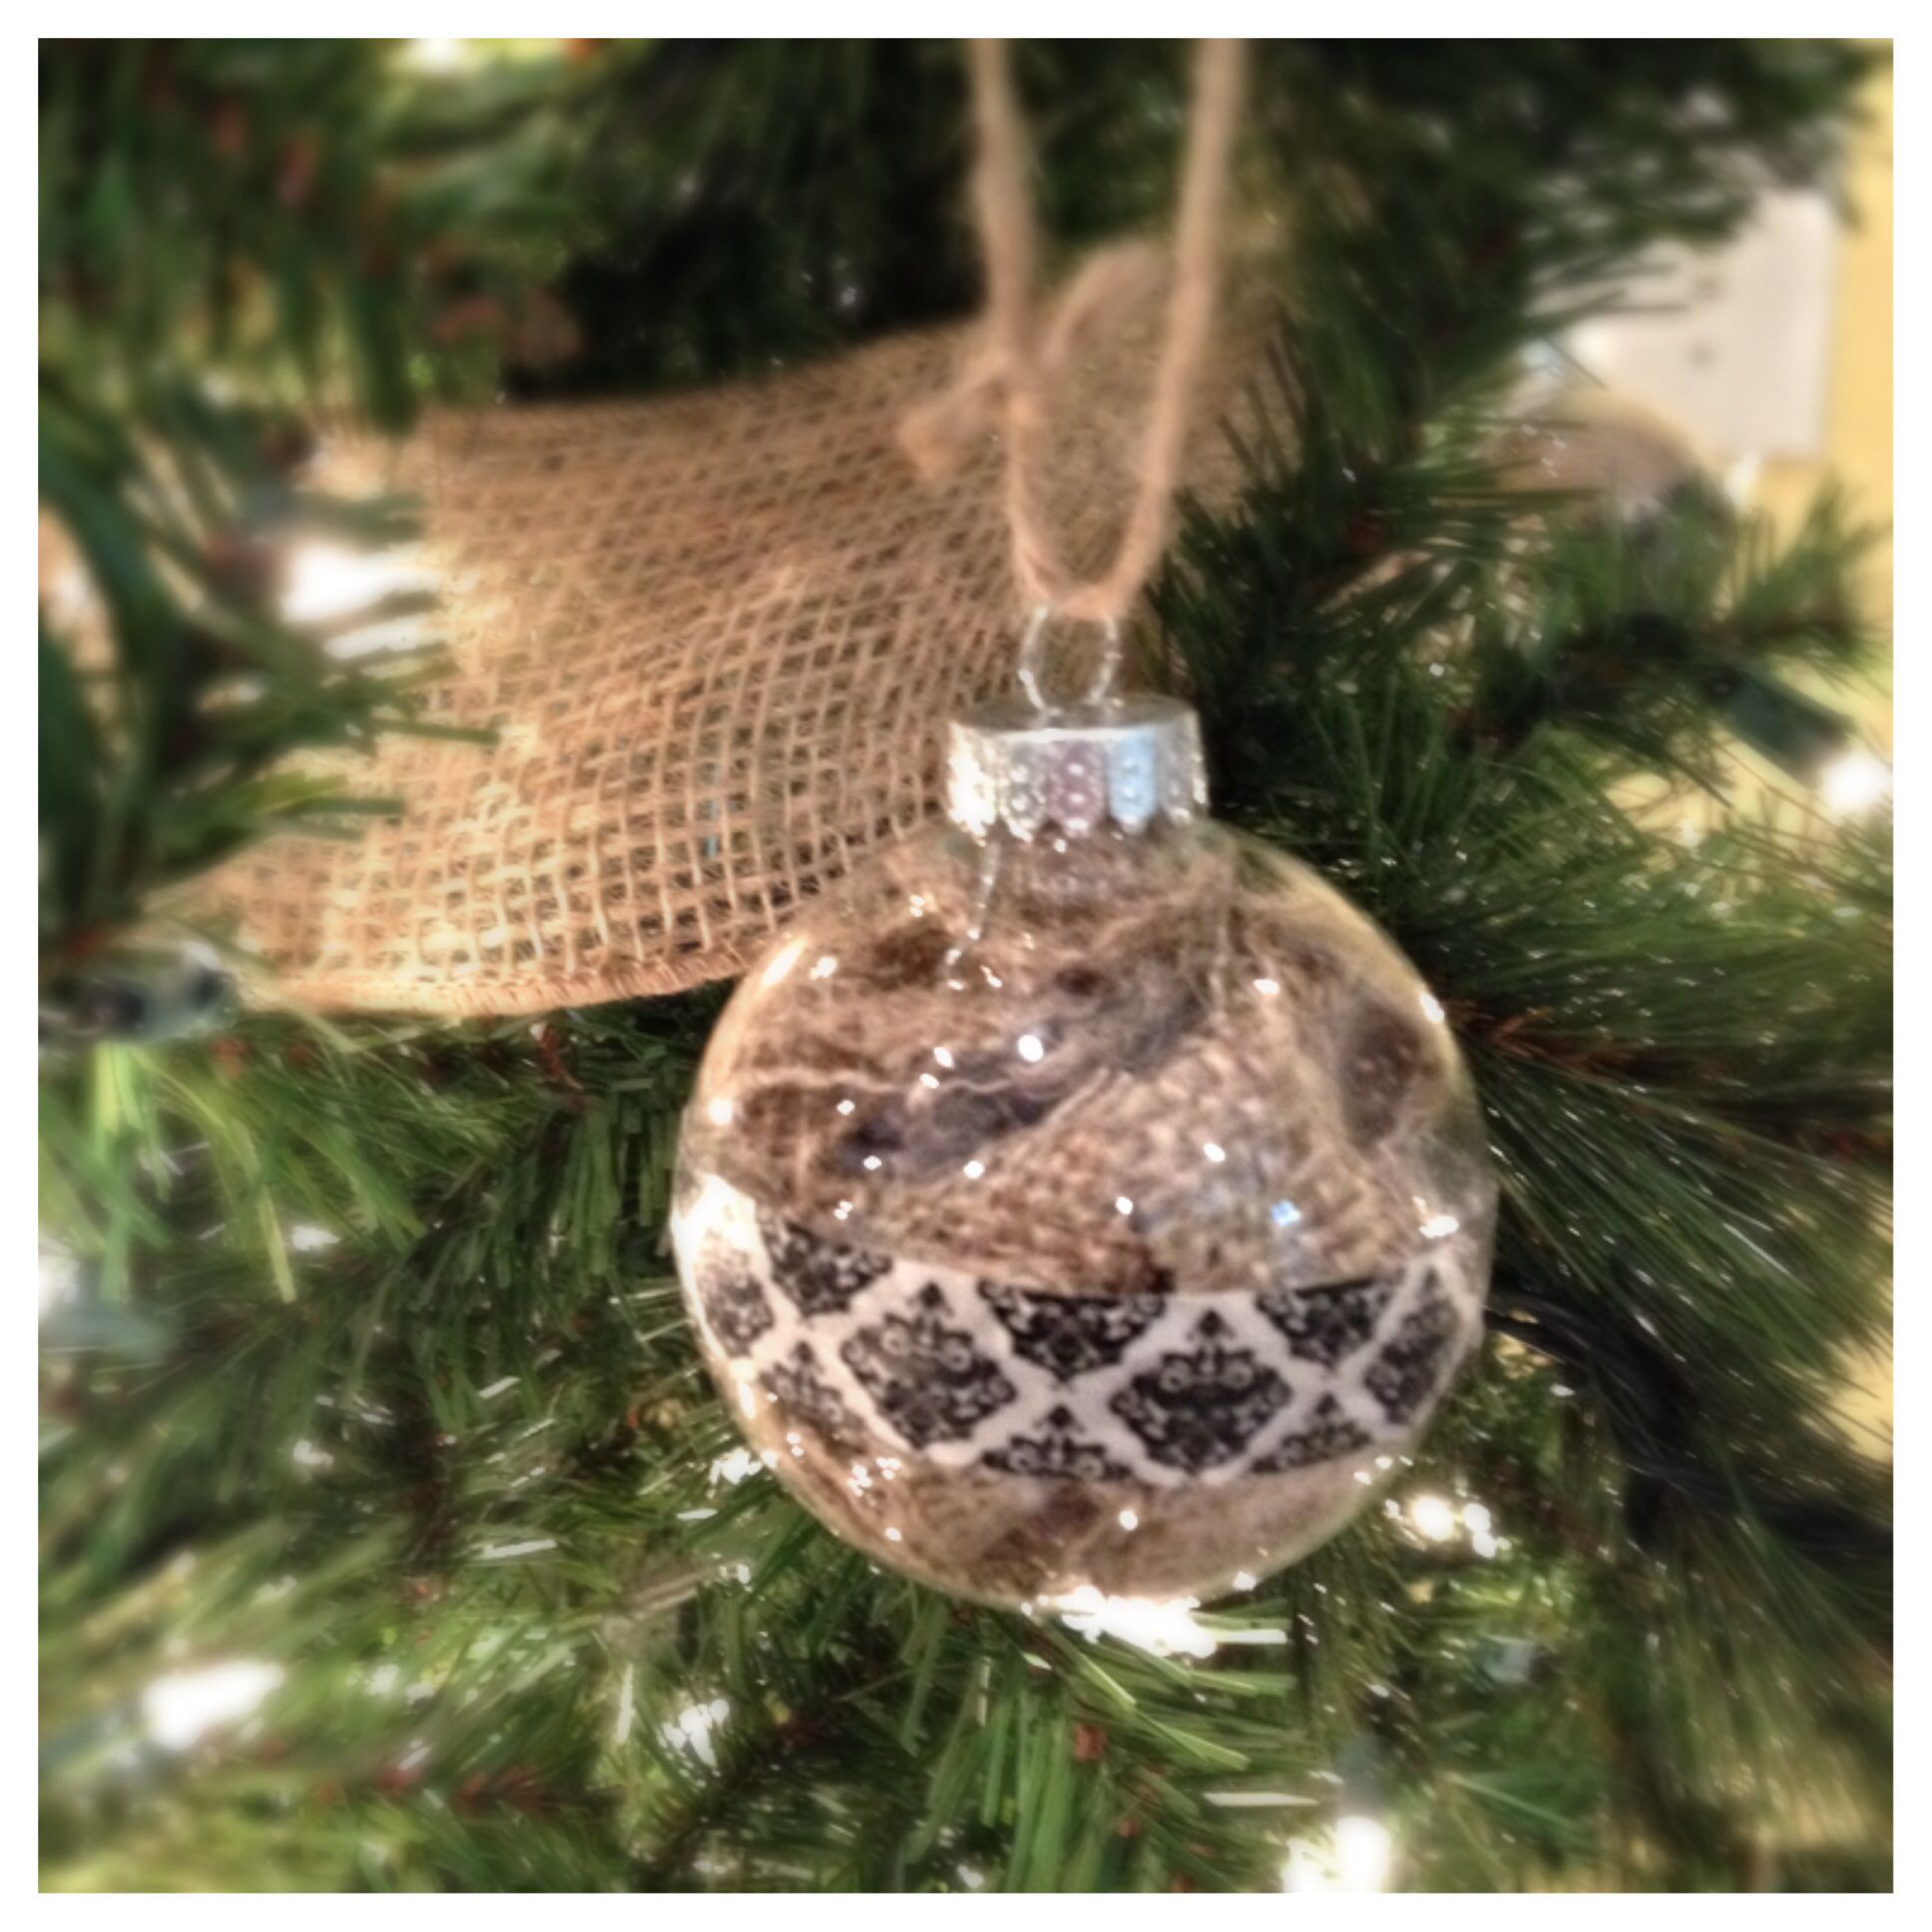 DIY burlap ornament for Christmas. Took pack of clear